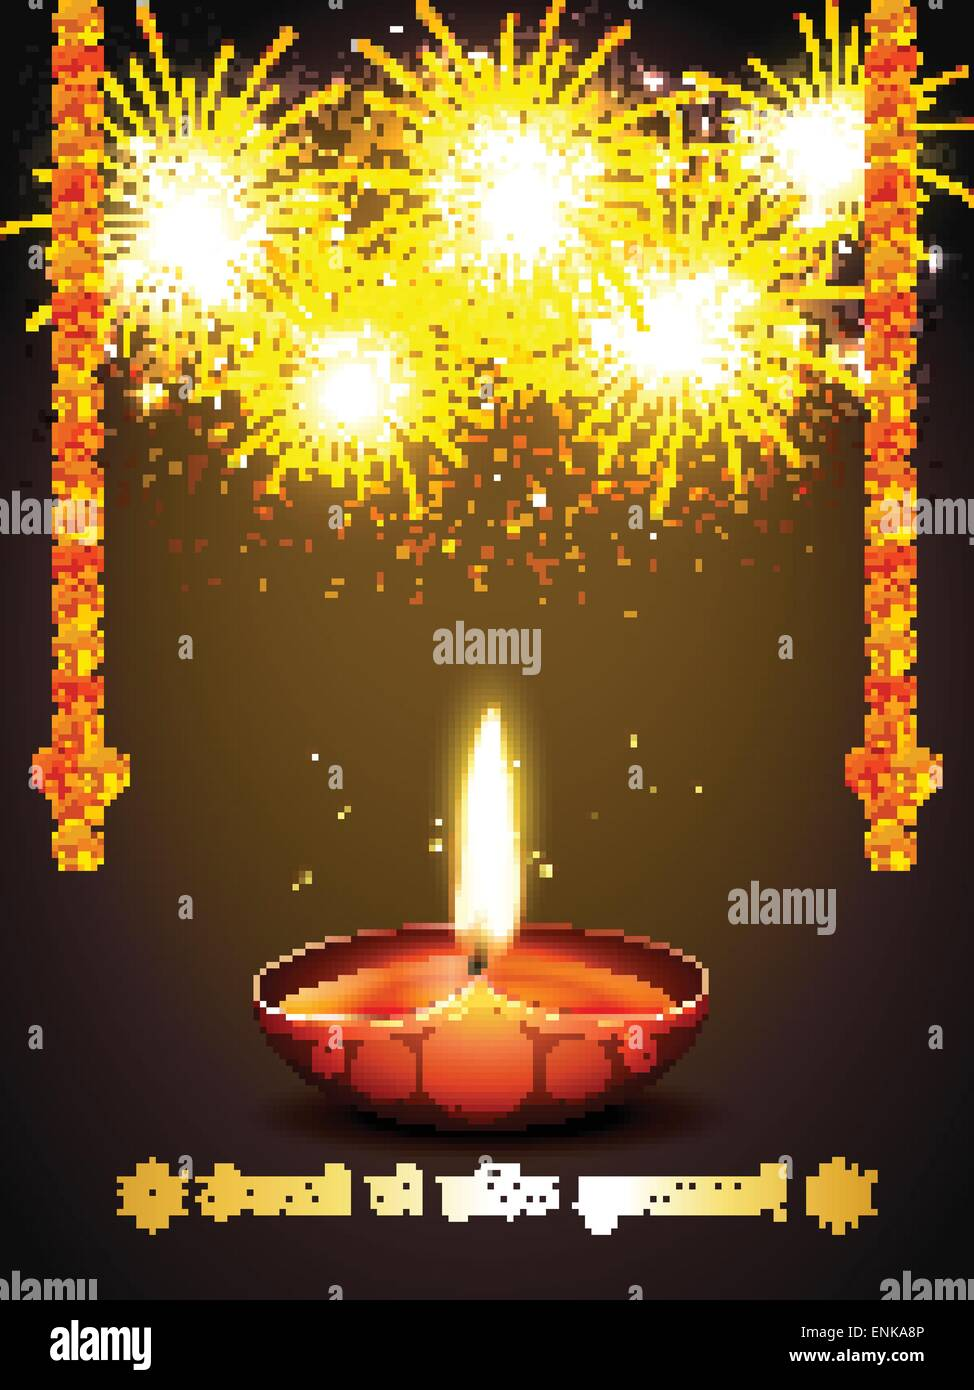 Happy diwali greeting with fireworks stock vector art illustration happy diwali greeting with fireworks m4hsunfo